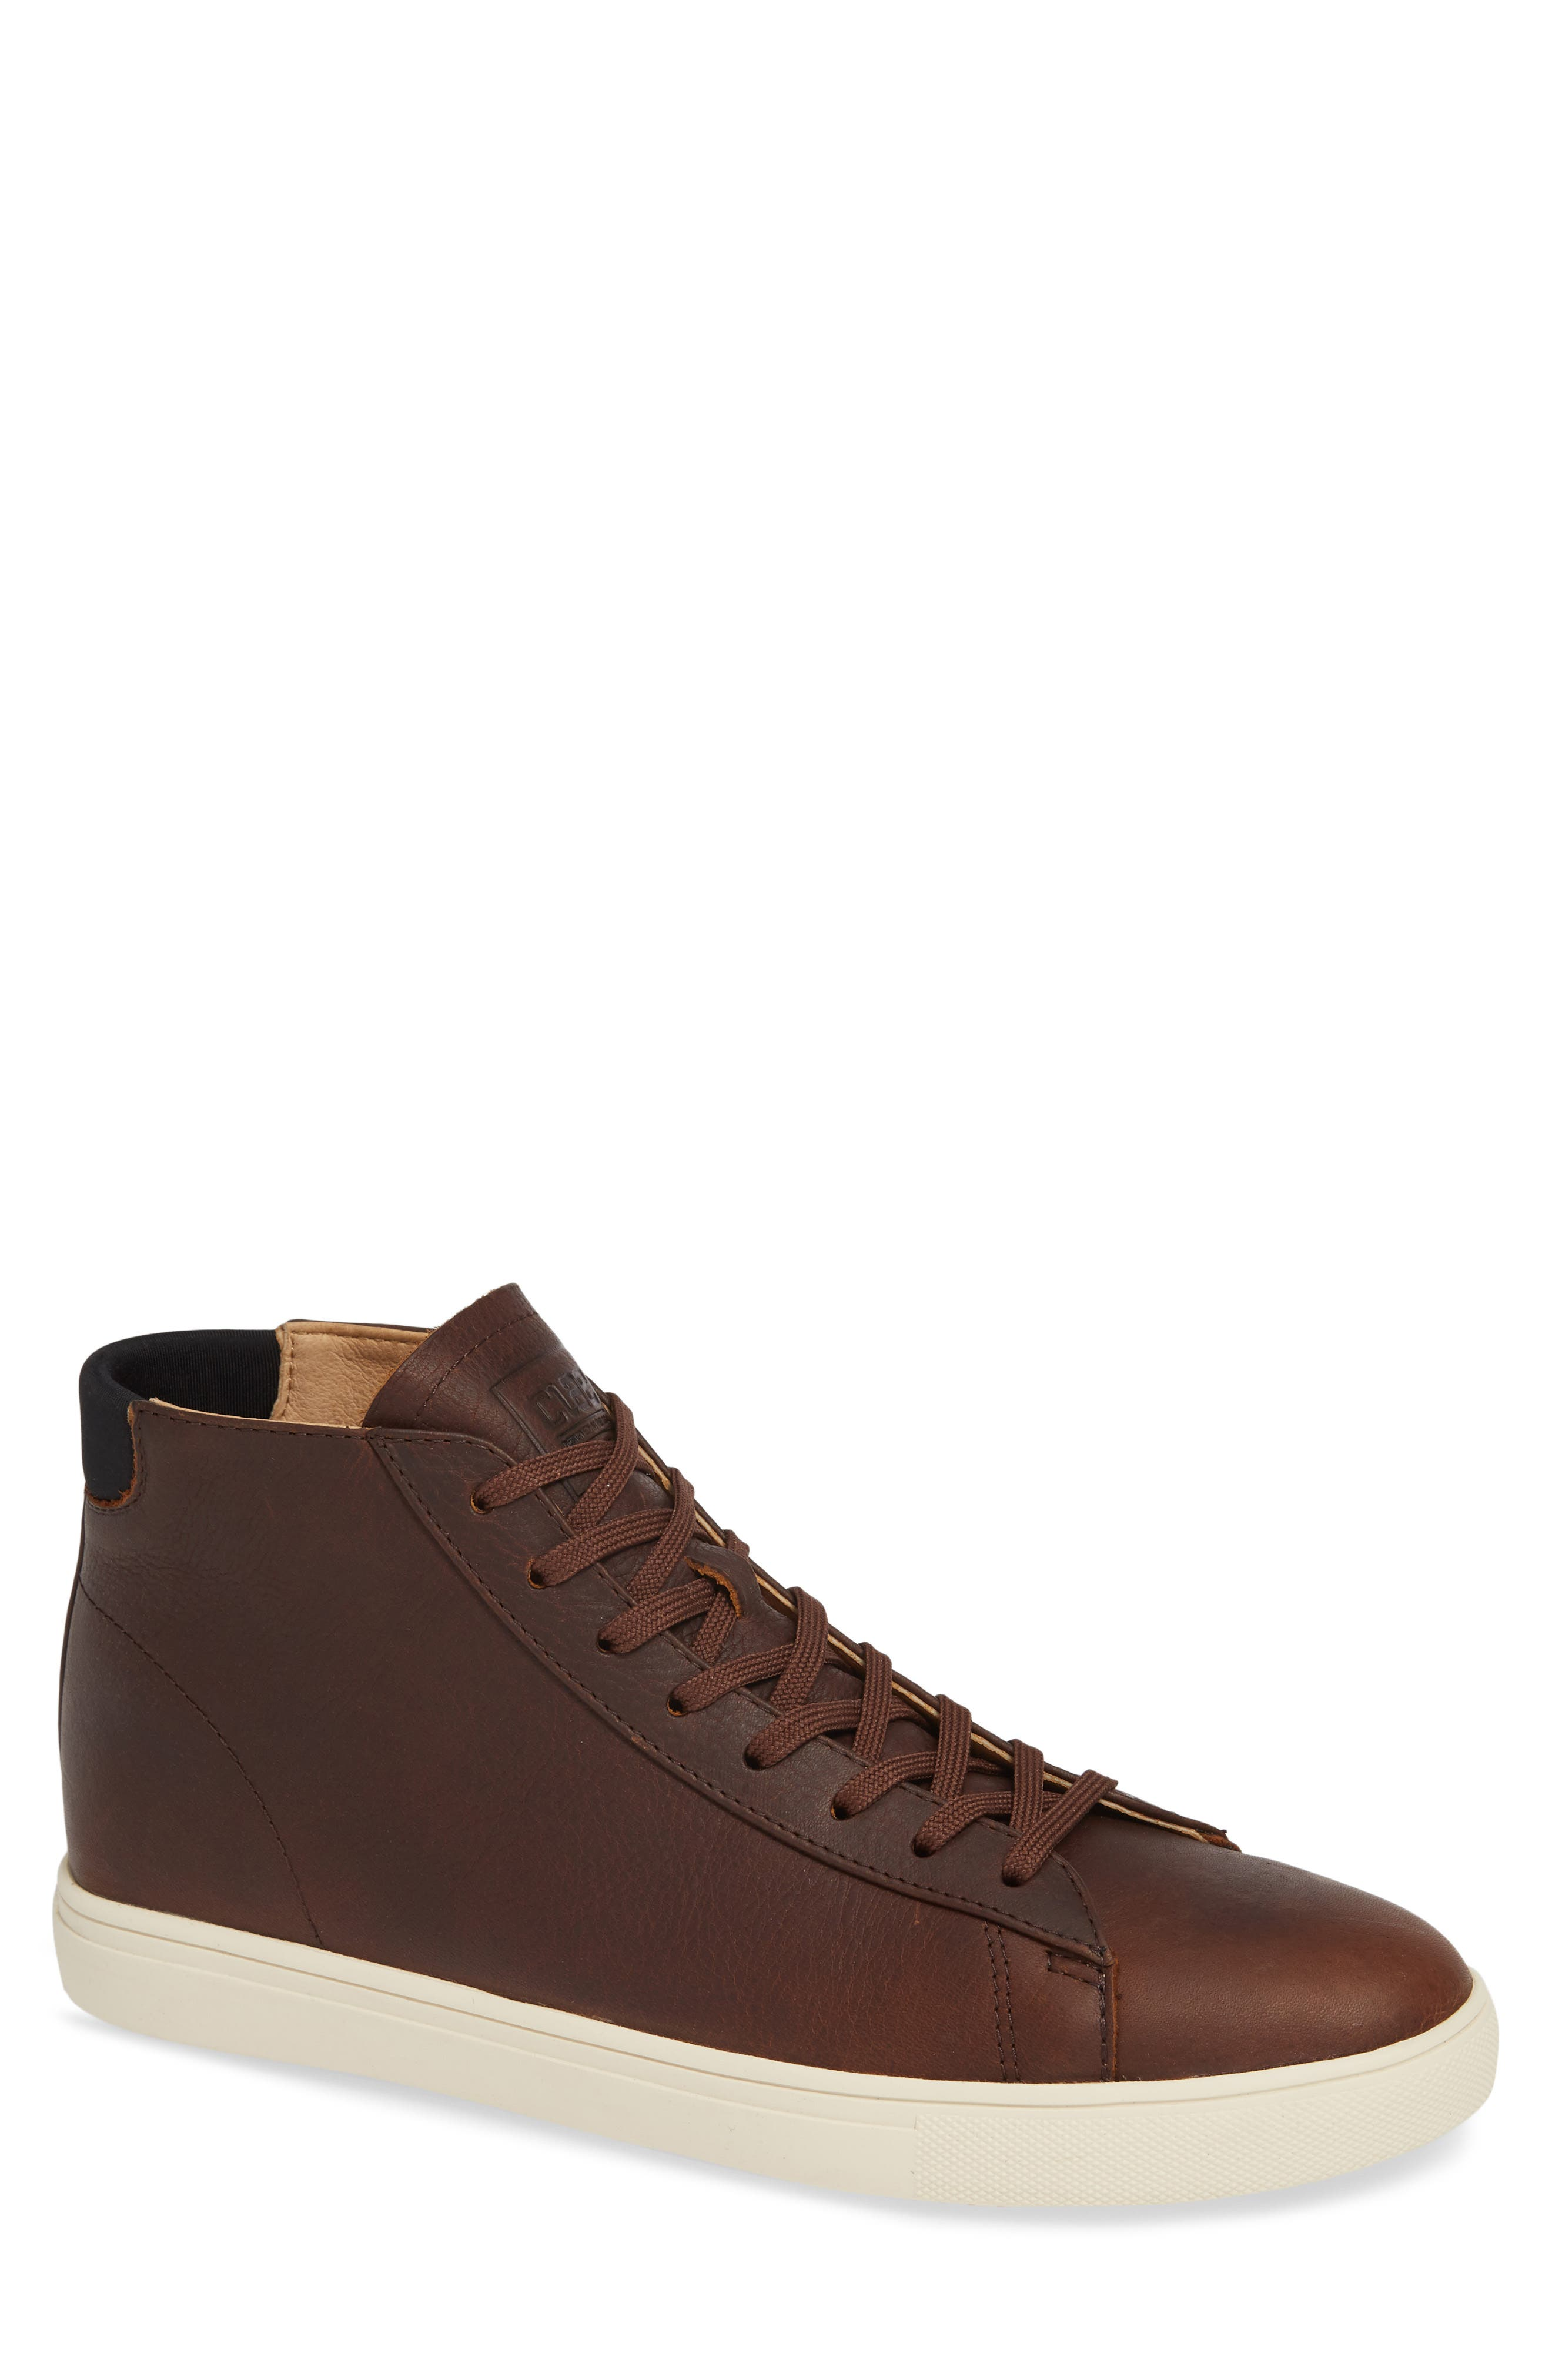 'Bradley Mid' Sneaker,                         Main,                         color, COCOA LEATHER